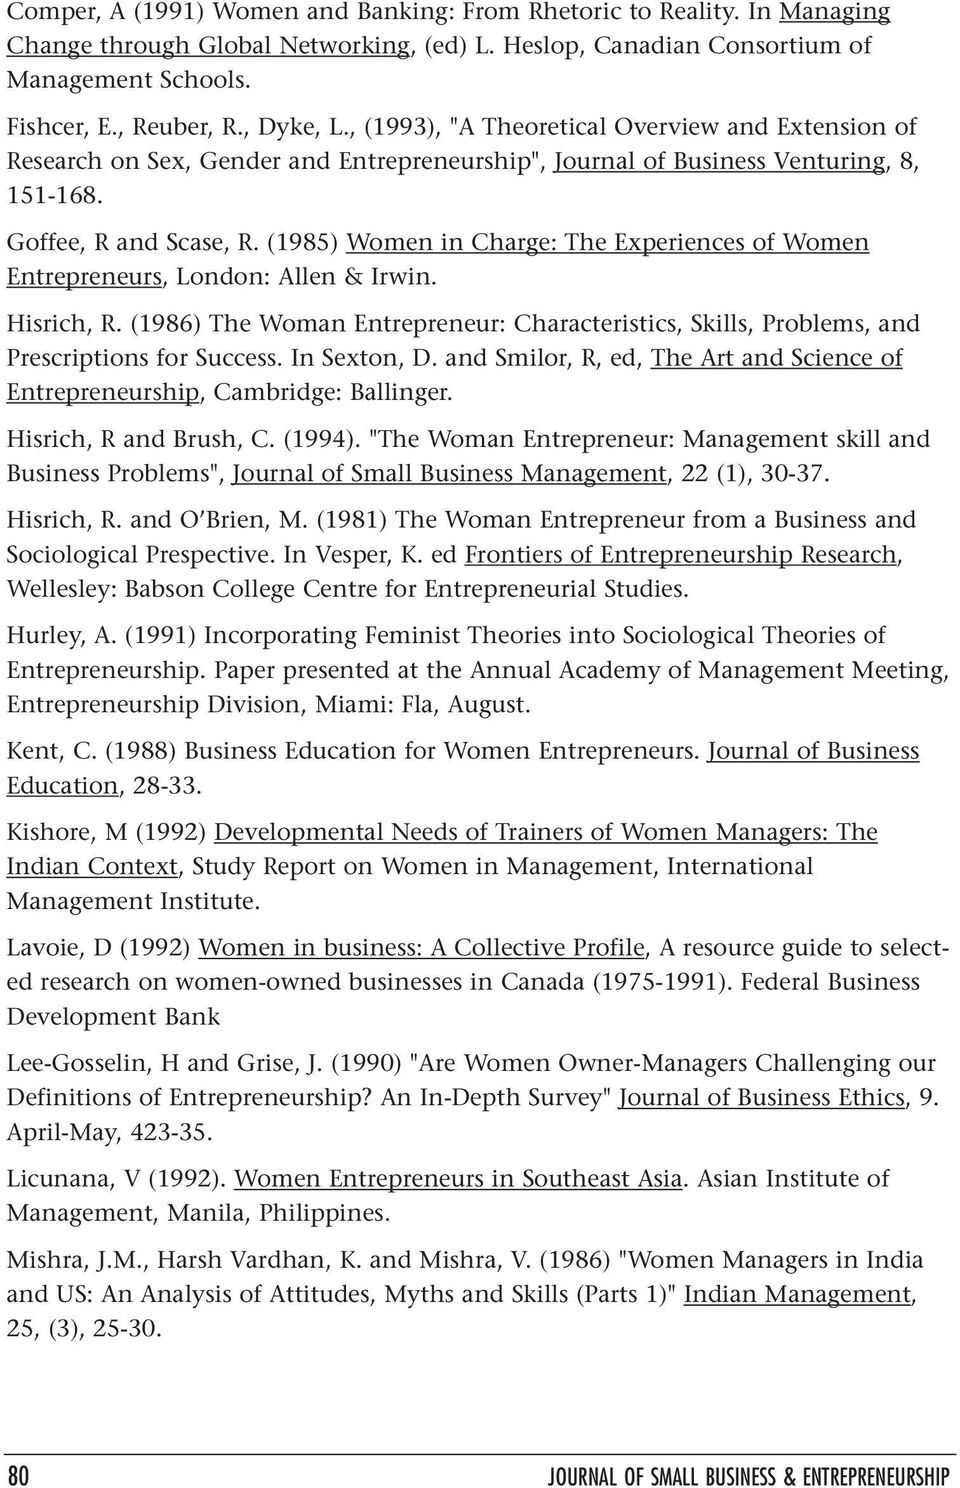 (1985) Women in Charge: The Experiences of Women Entrepreneurs, London: Allen & Irwin. Hisrich, R. (1986) The Woman Entrepreneur: Characteristics, Skills, Problems, and Prescriptions for Success.